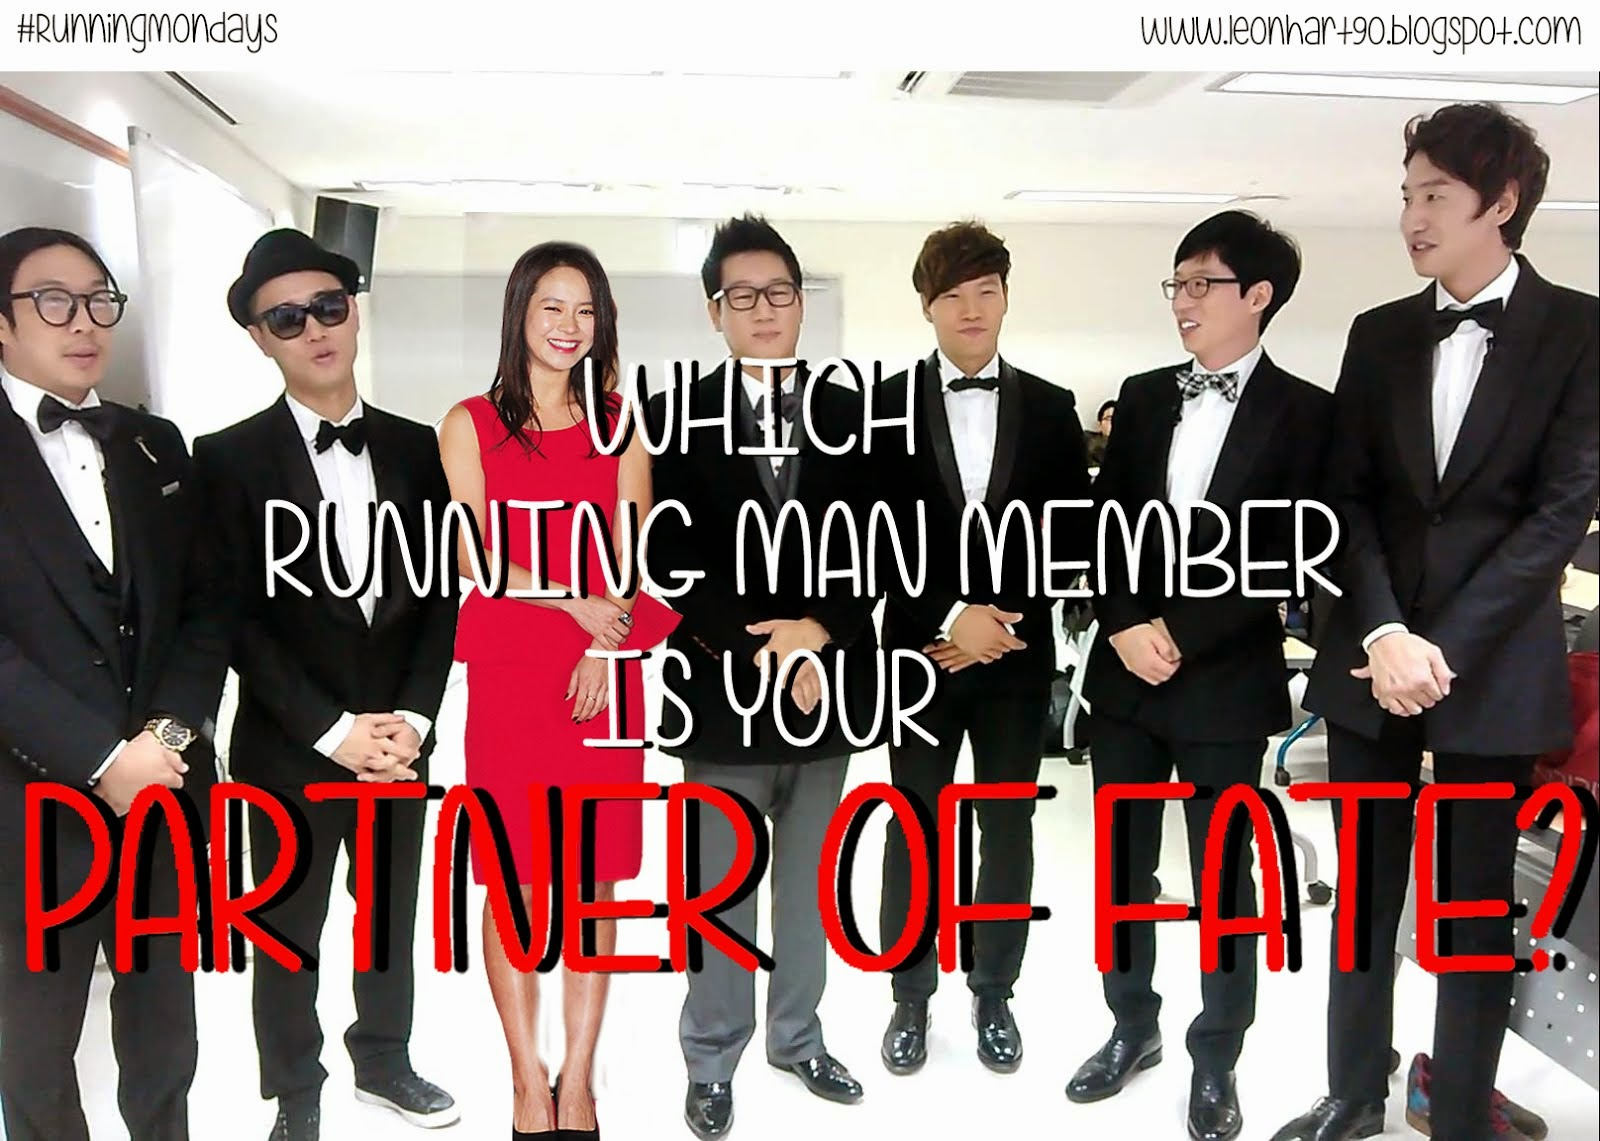 #RunningMondays Quiz: Which Running Man Member is your Partner of Fate